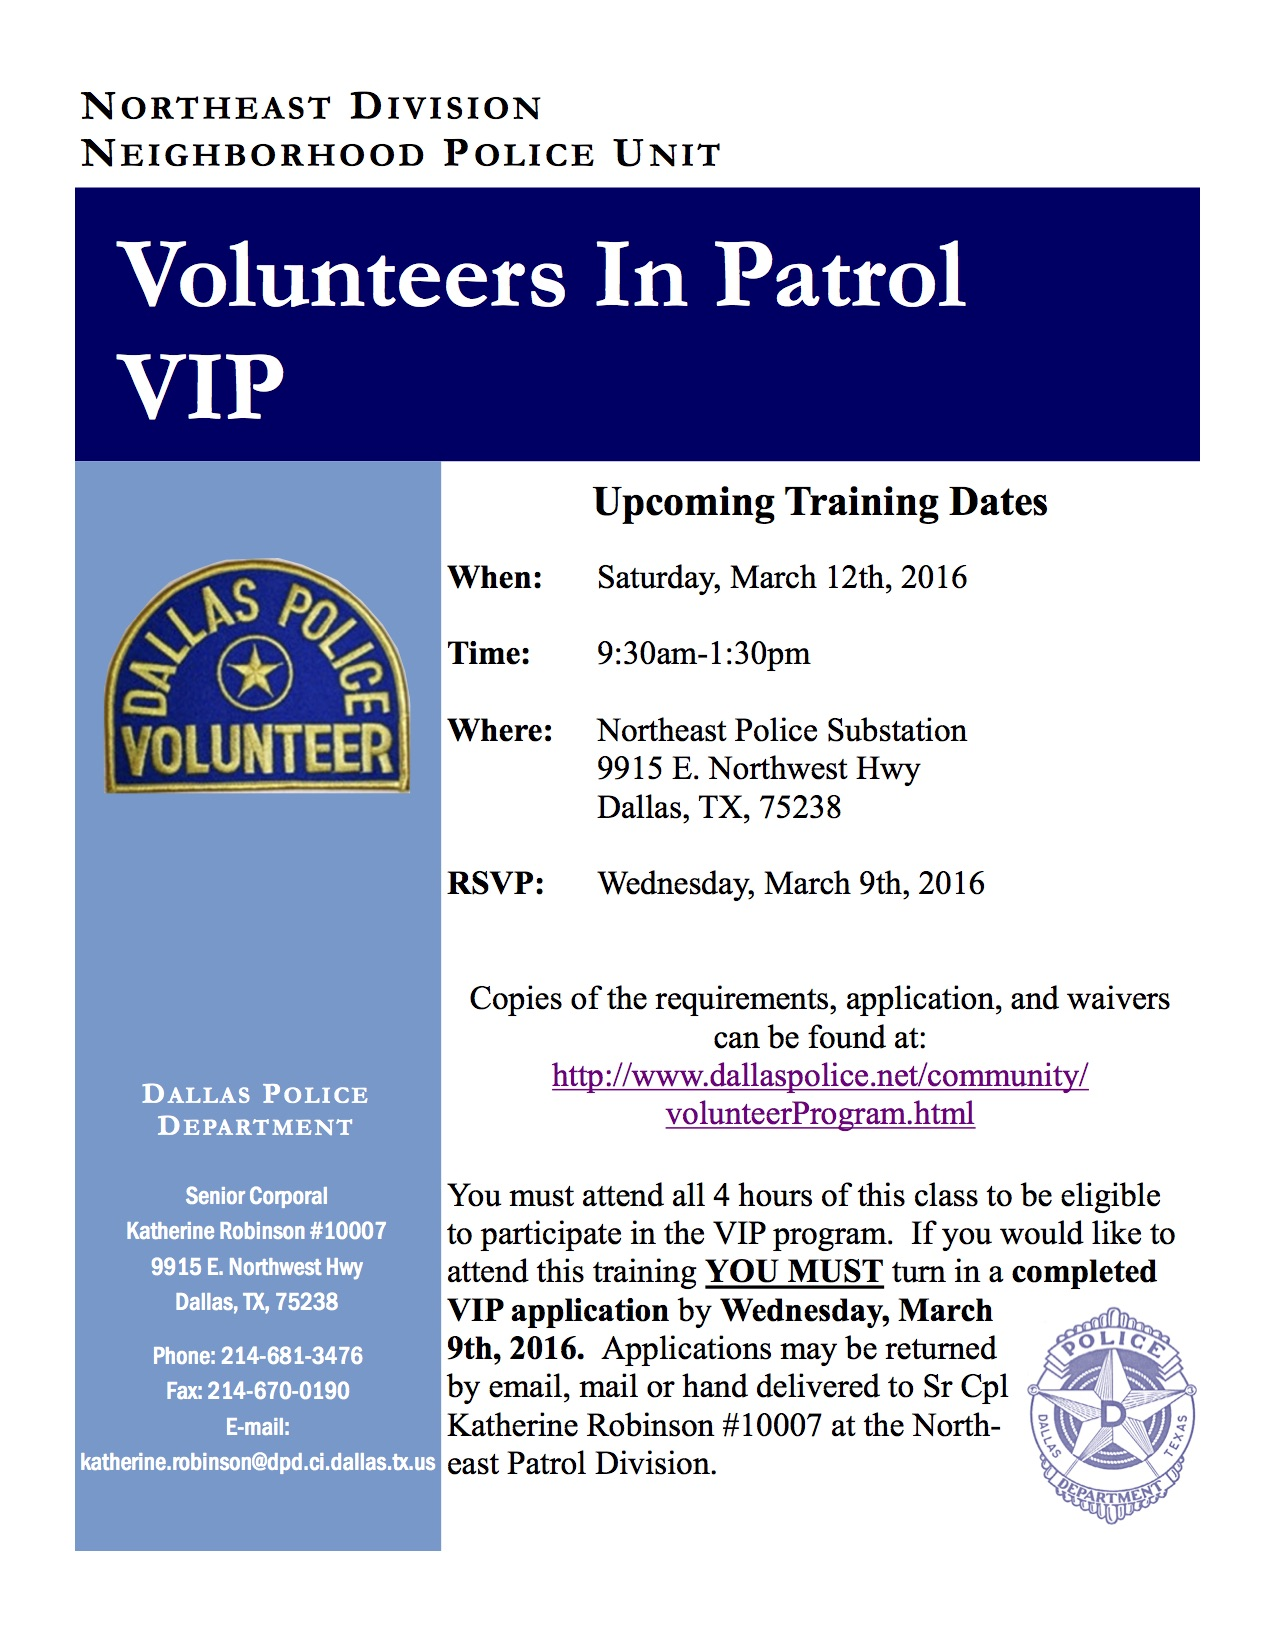 DPD Northeast Division, VIP Training Flyer for March 12